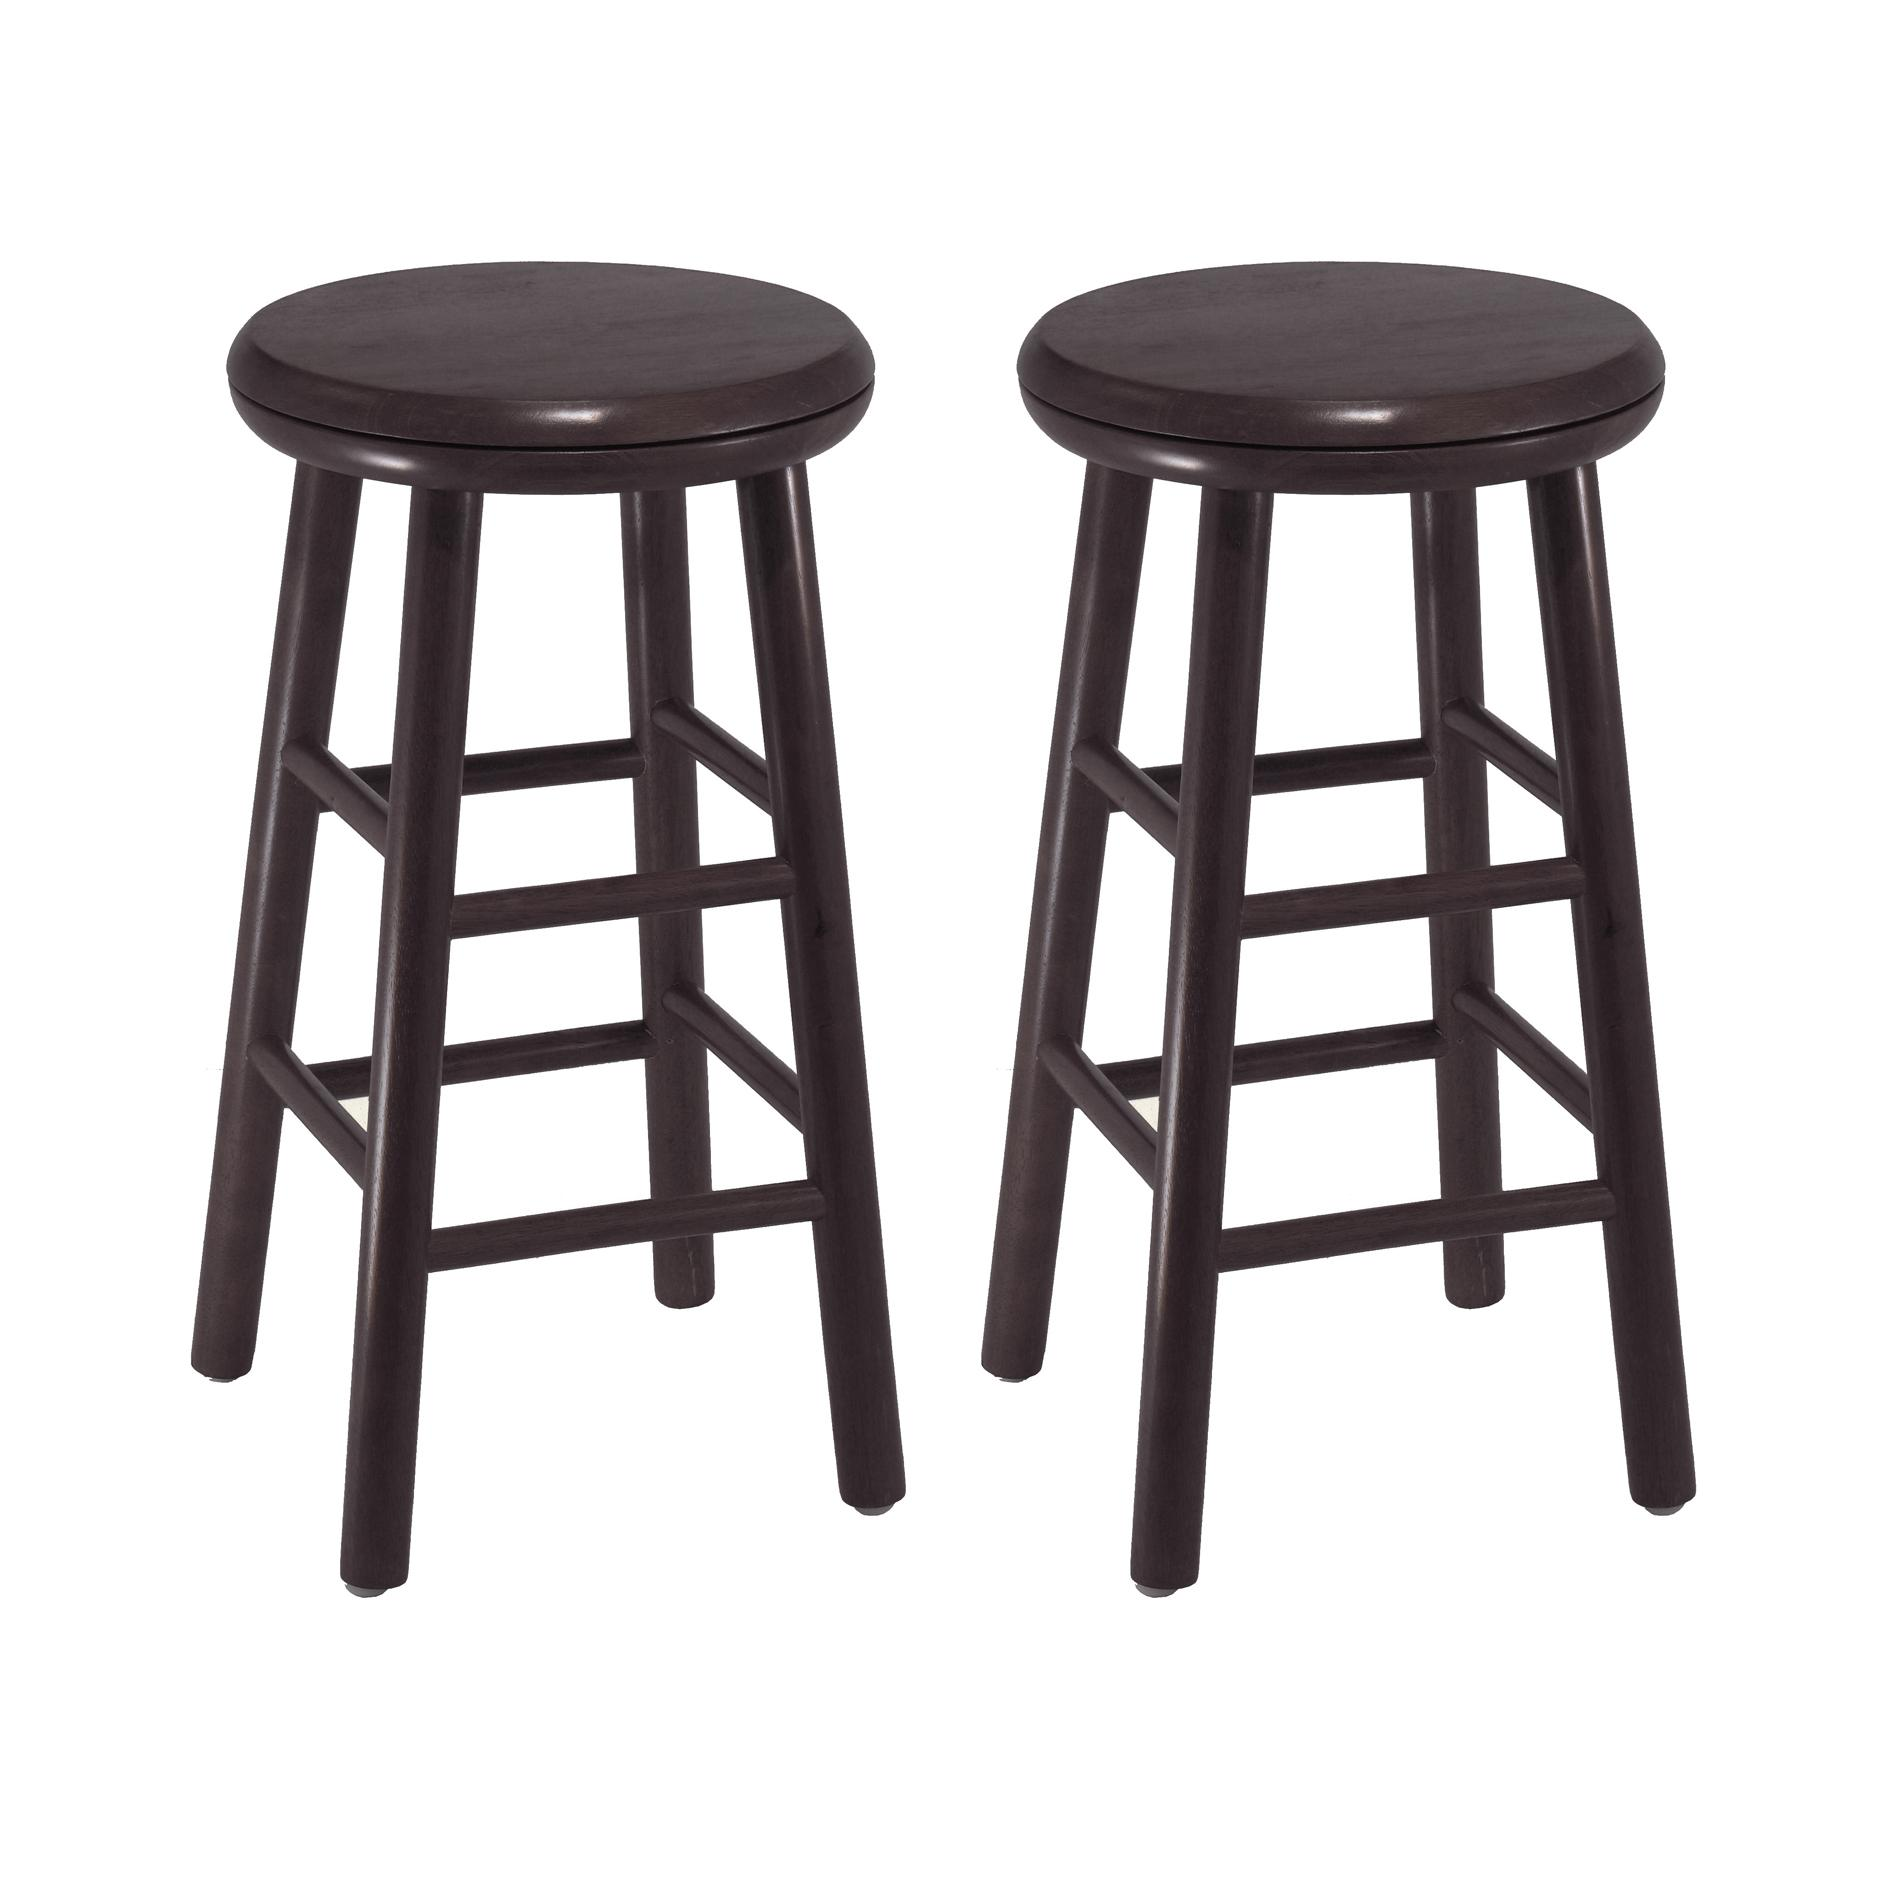 Amazoncom Winsome Wood 24Inch Swivel Bar Stools Dark Espresso